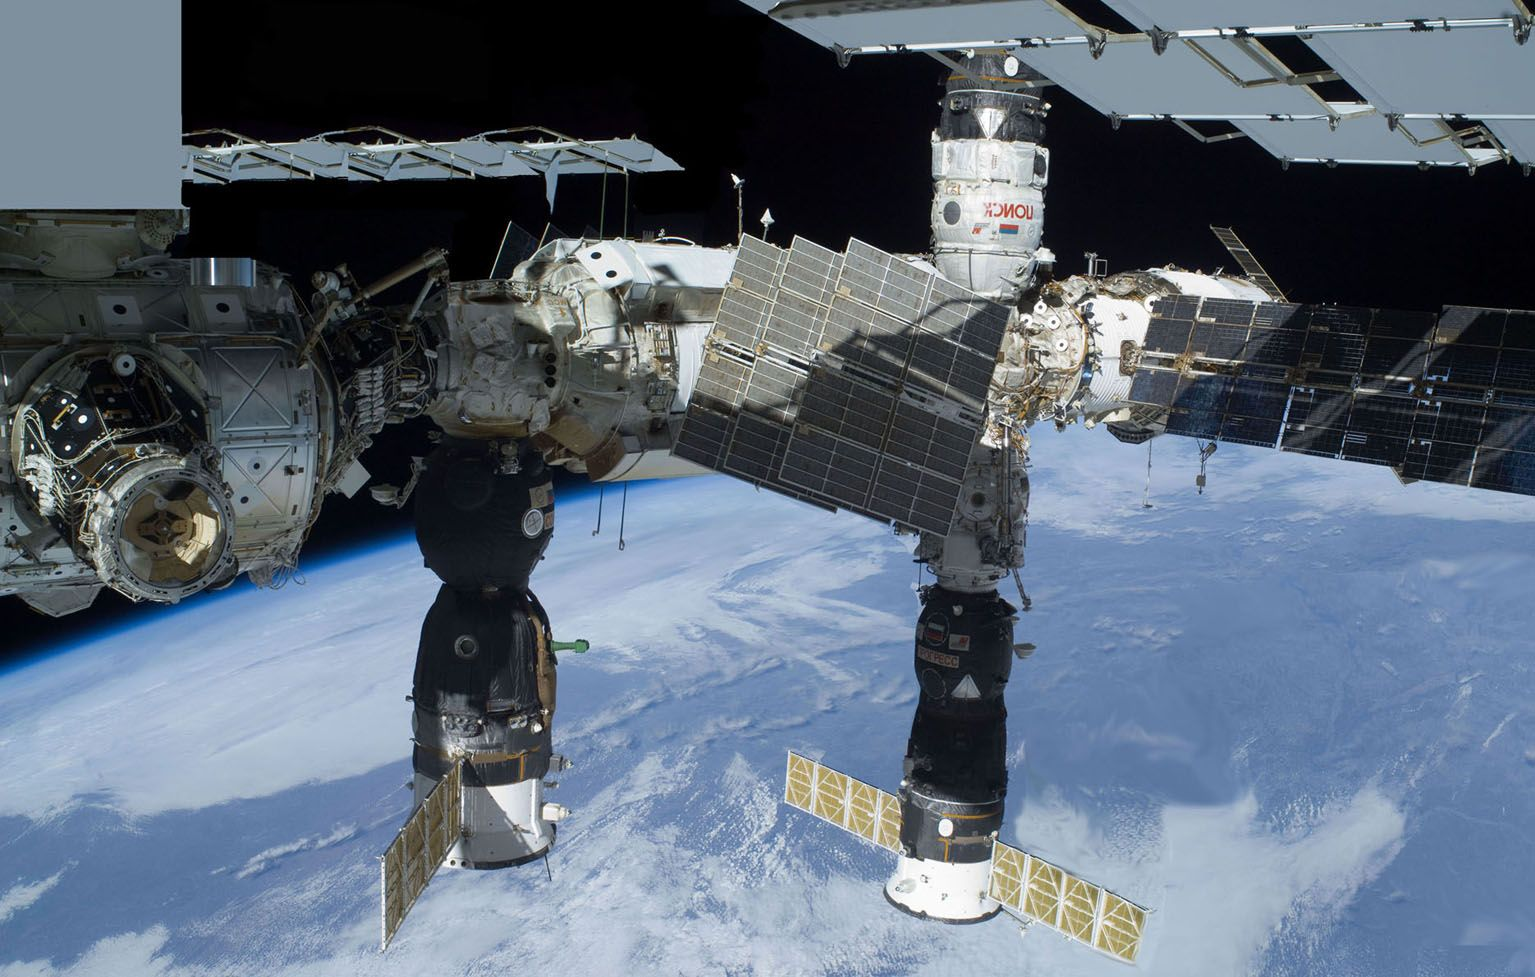 STS-129_Composite_ISS_Space_Station.jpg (1535×977)